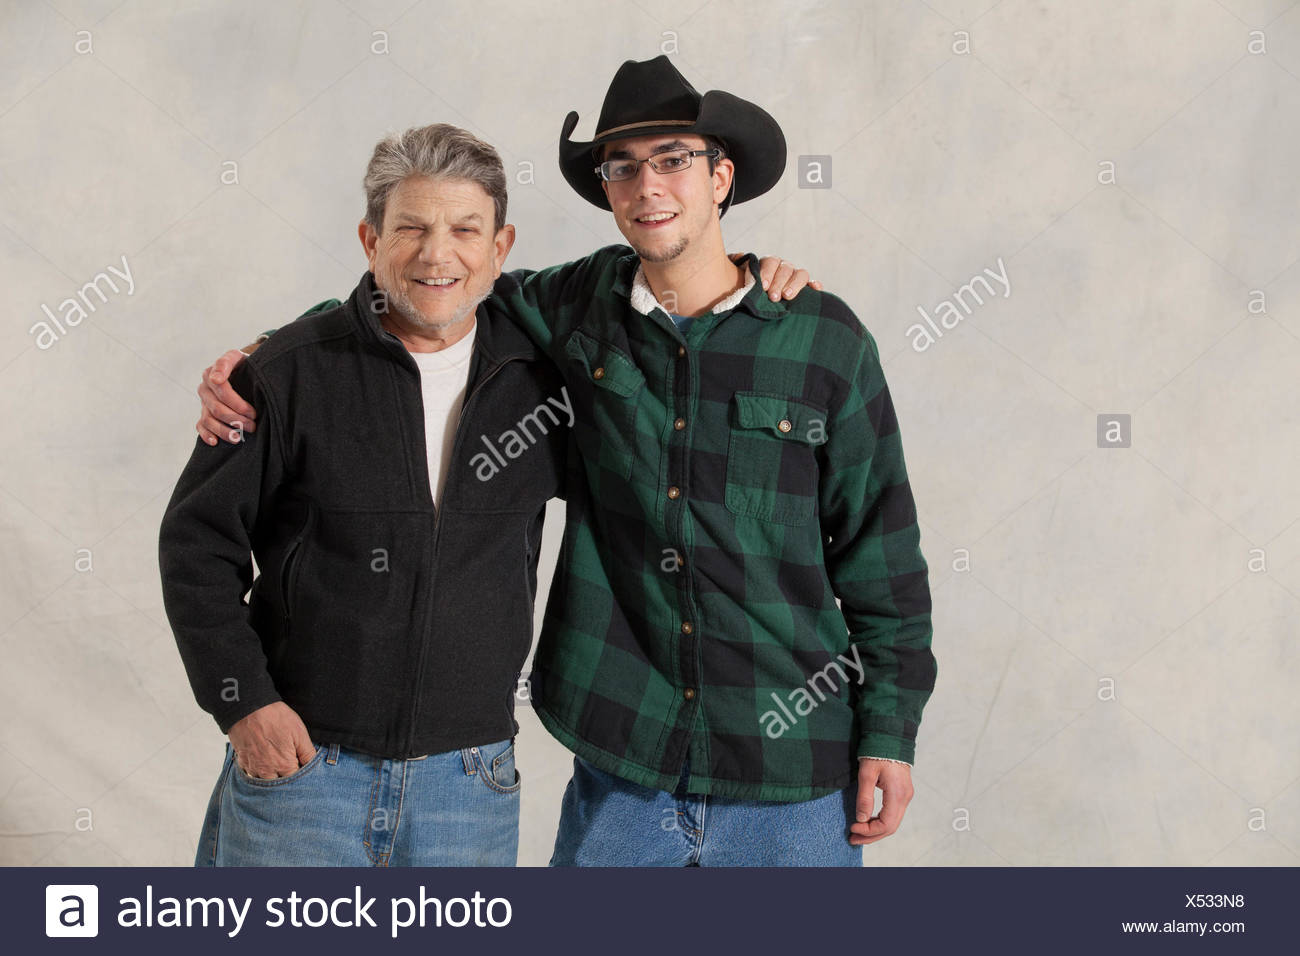 Portrait of a young man with autism and his mentor smiling - Stock Image